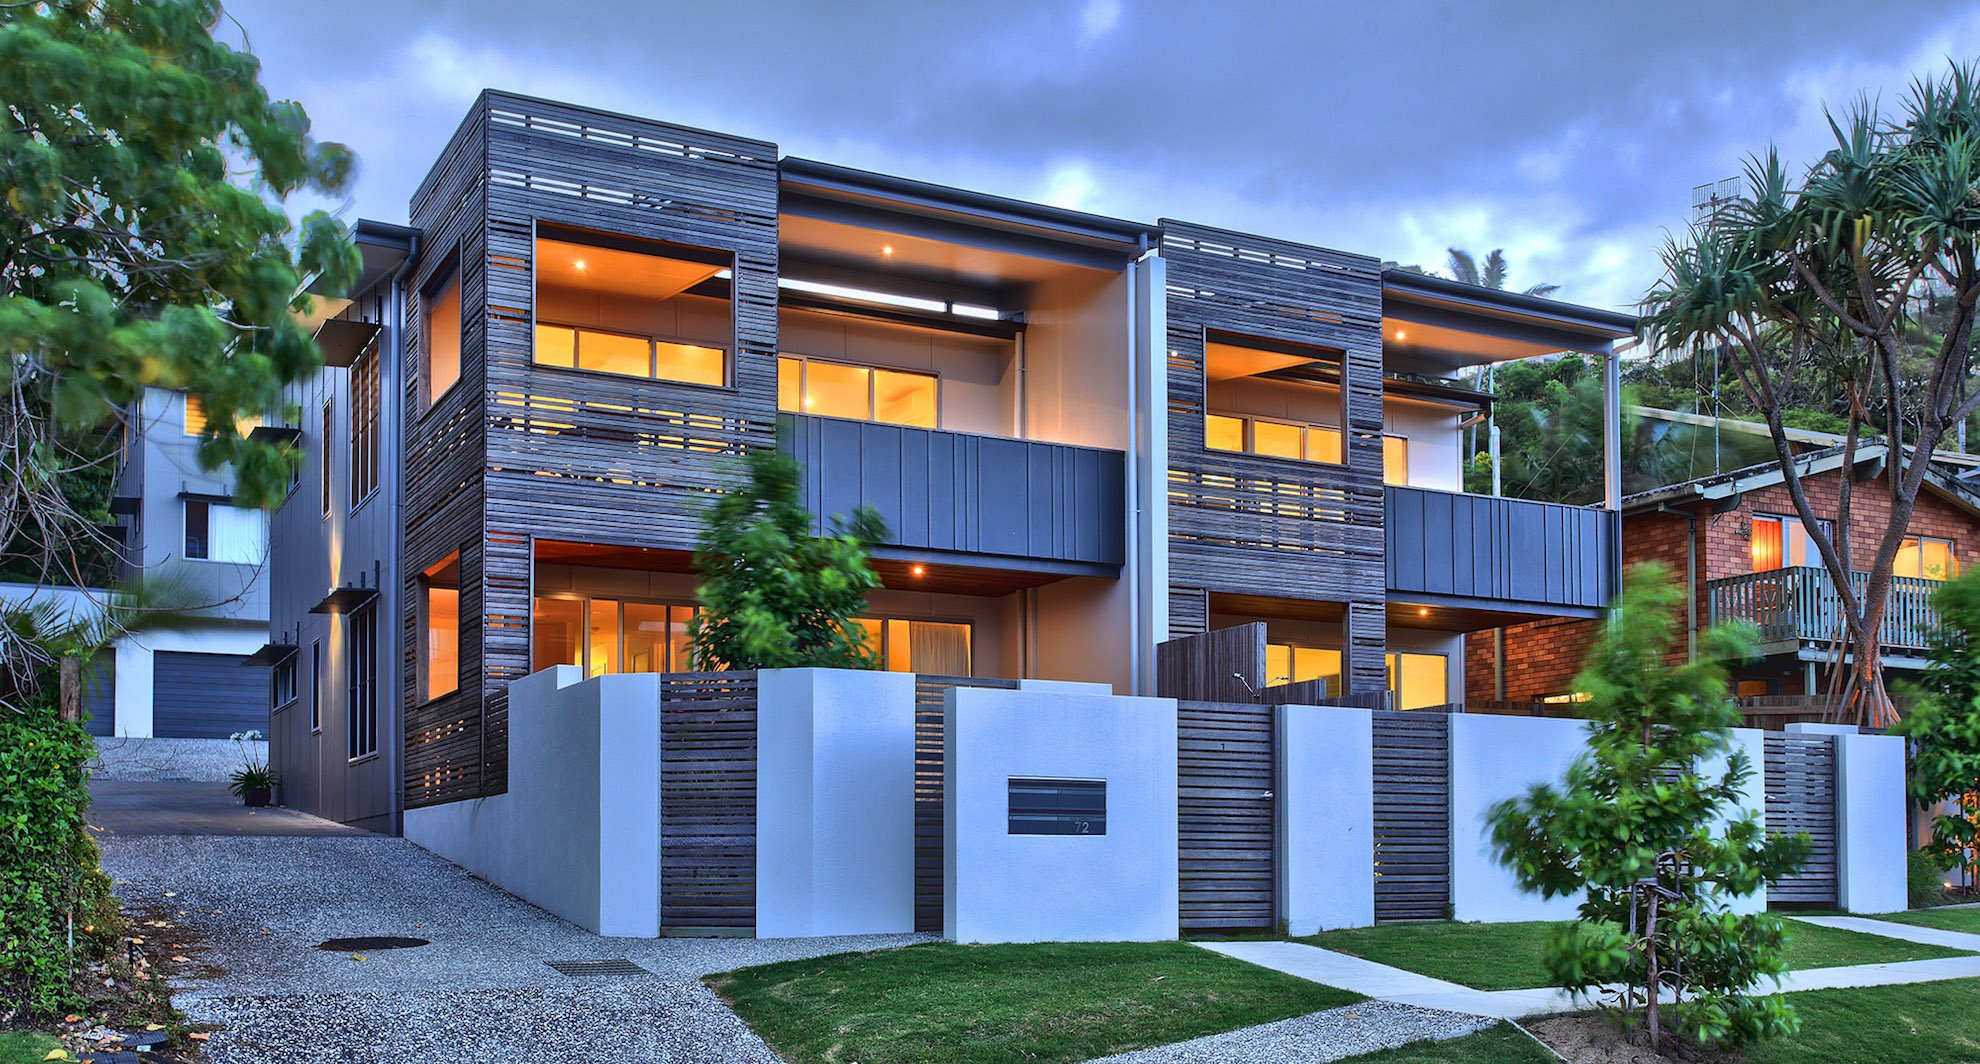 Coolum Terrace project by mdesign, a building design practice that operates on the Sunshine Coast.